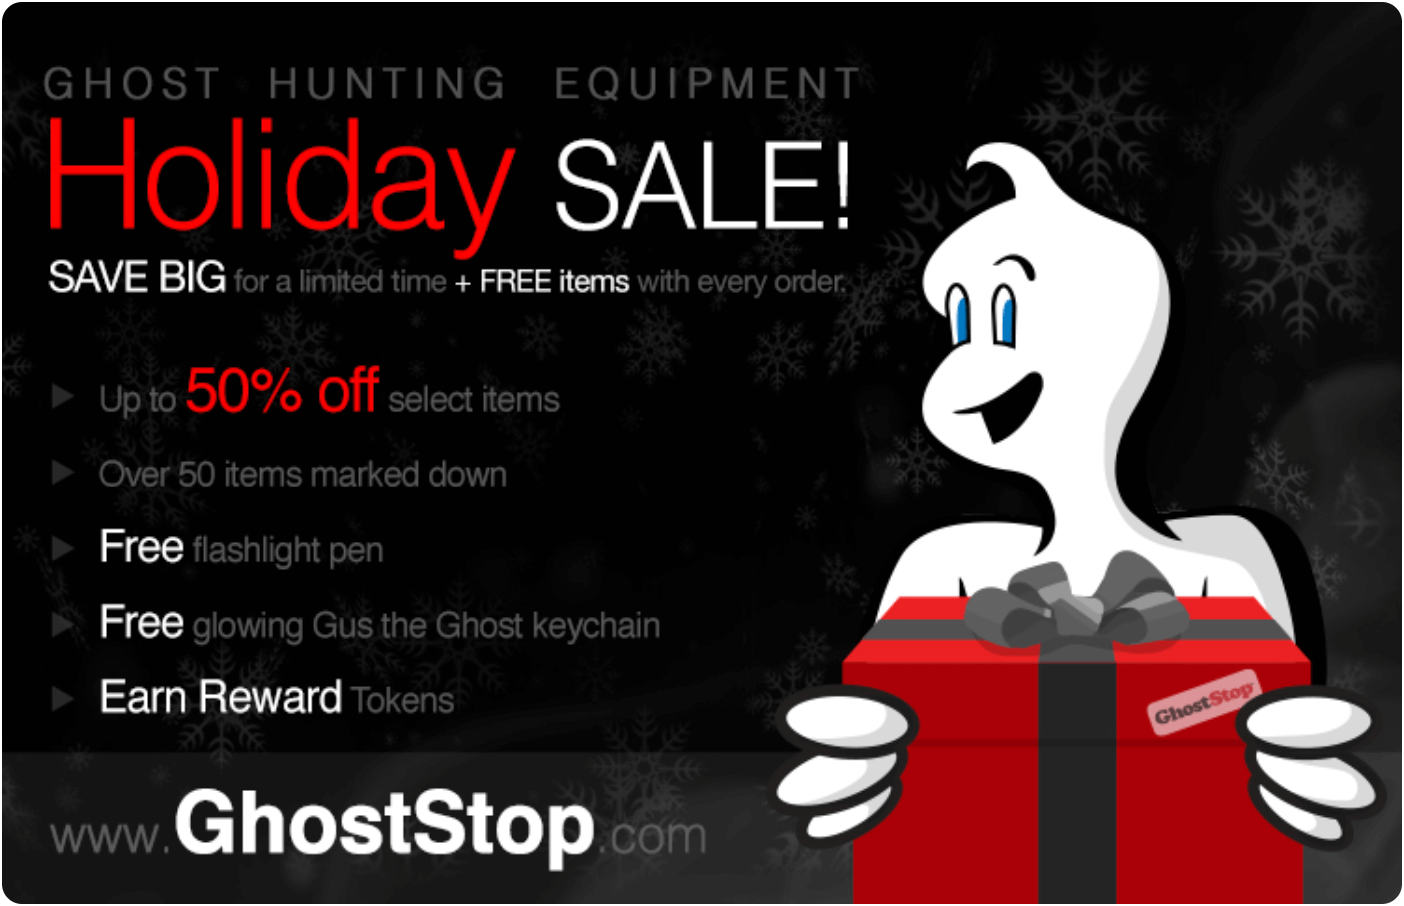 ghoststop-holiday-sale